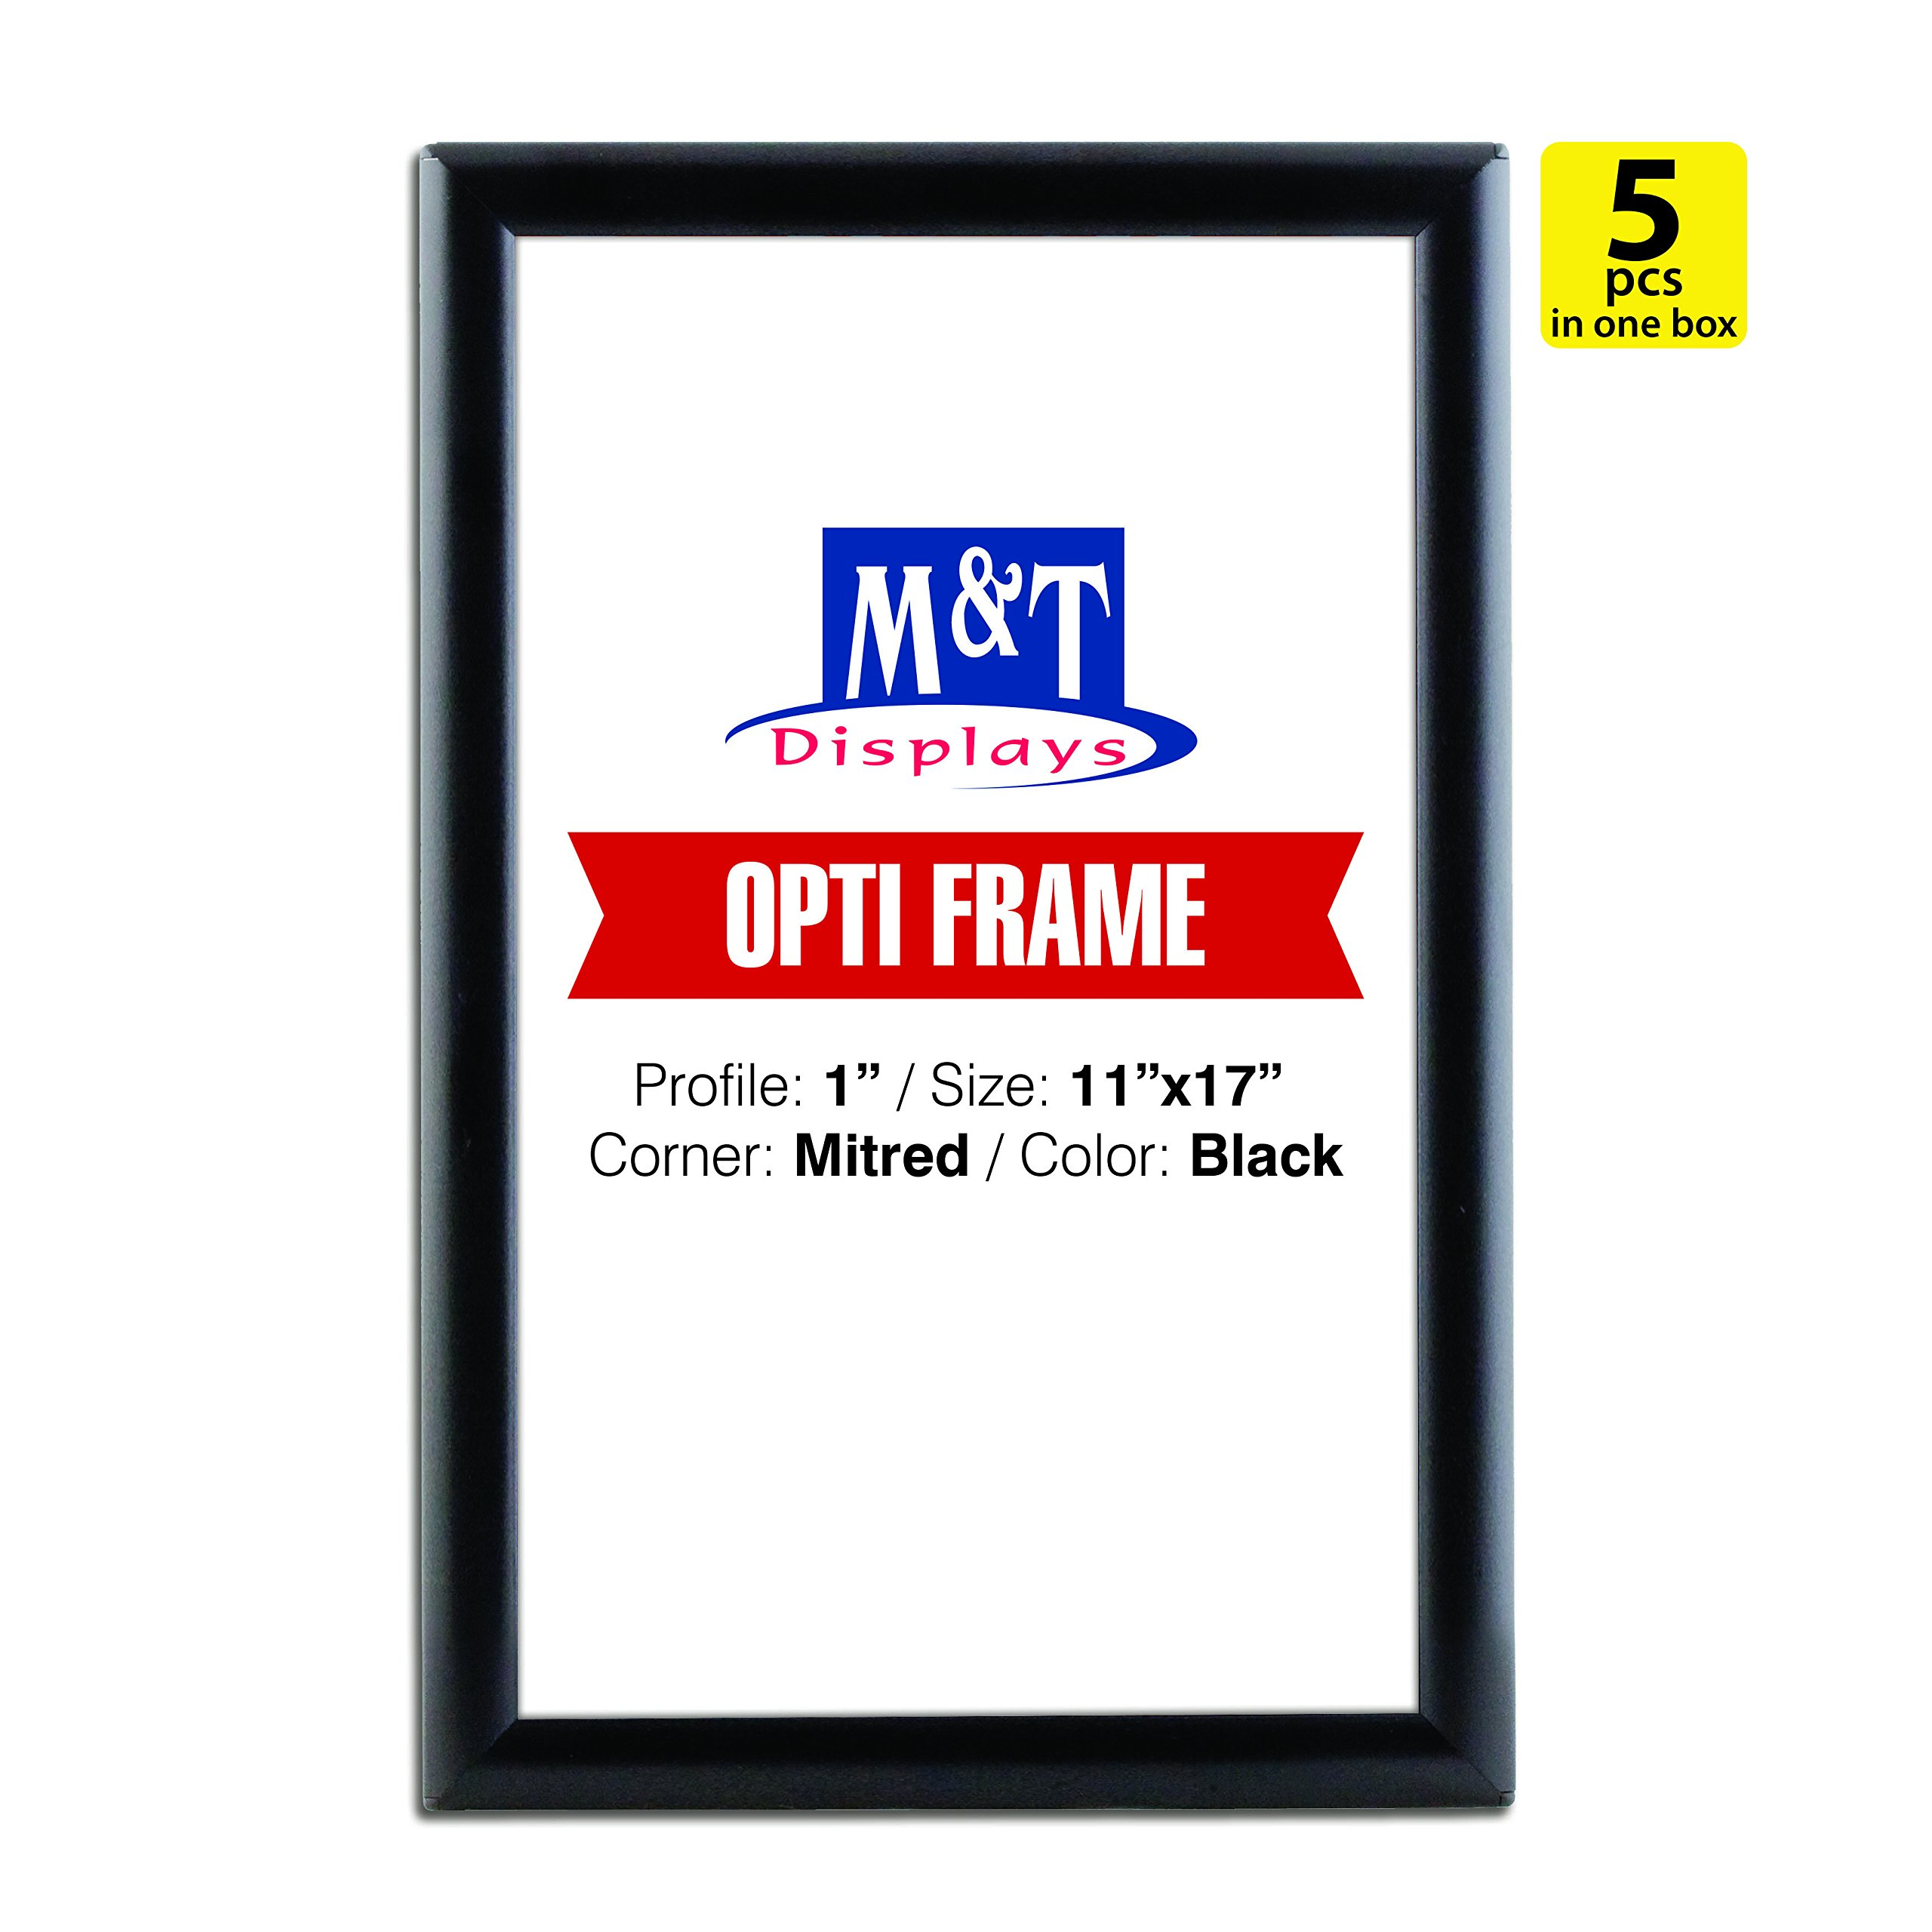 11x17 Snap Poster Frame, 1 inch Profile, Aluminum, Wall Mounted - Black / 5pcs, Easy Change, Front Loading